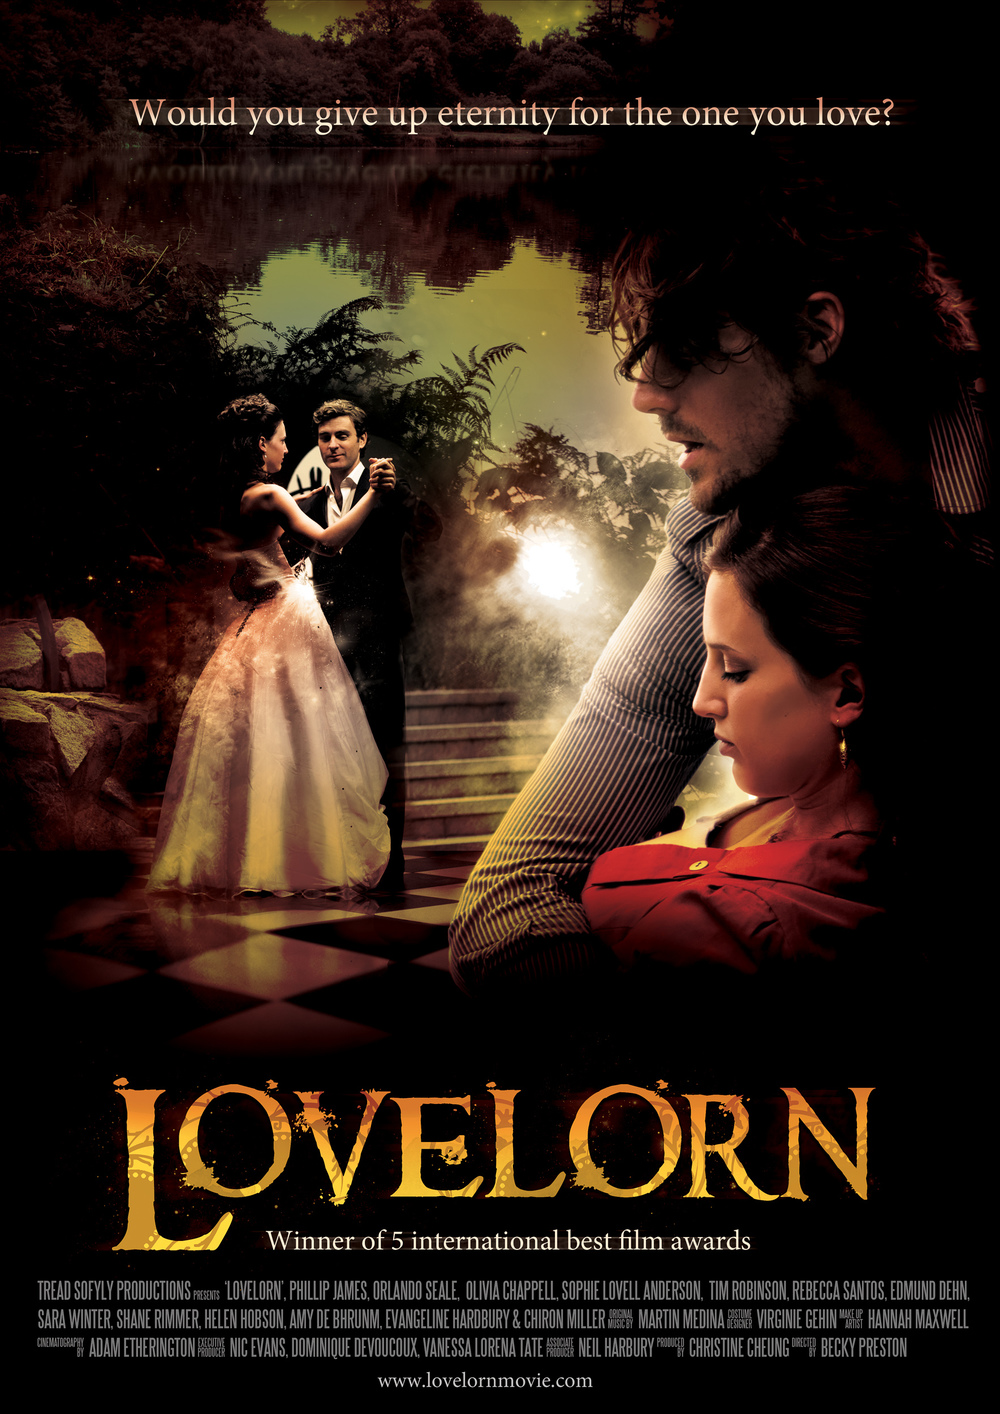 Orlando Seale, Phillip James, Olivia Chappell on the poster for feature film Lovelorn